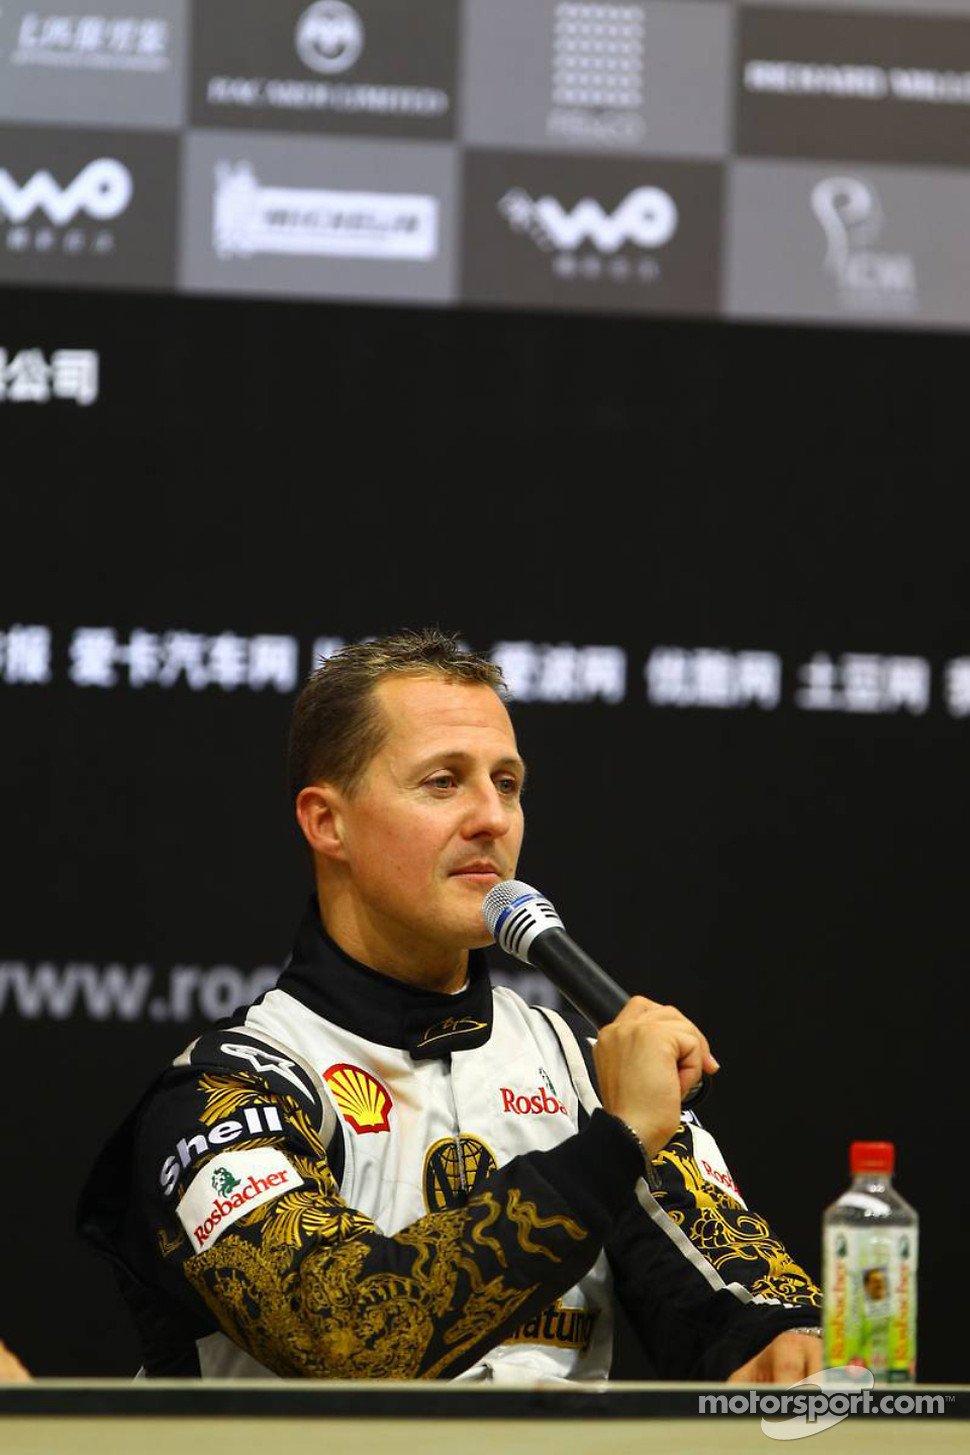 Press conference: Race of Champions second place Michael Schumacher